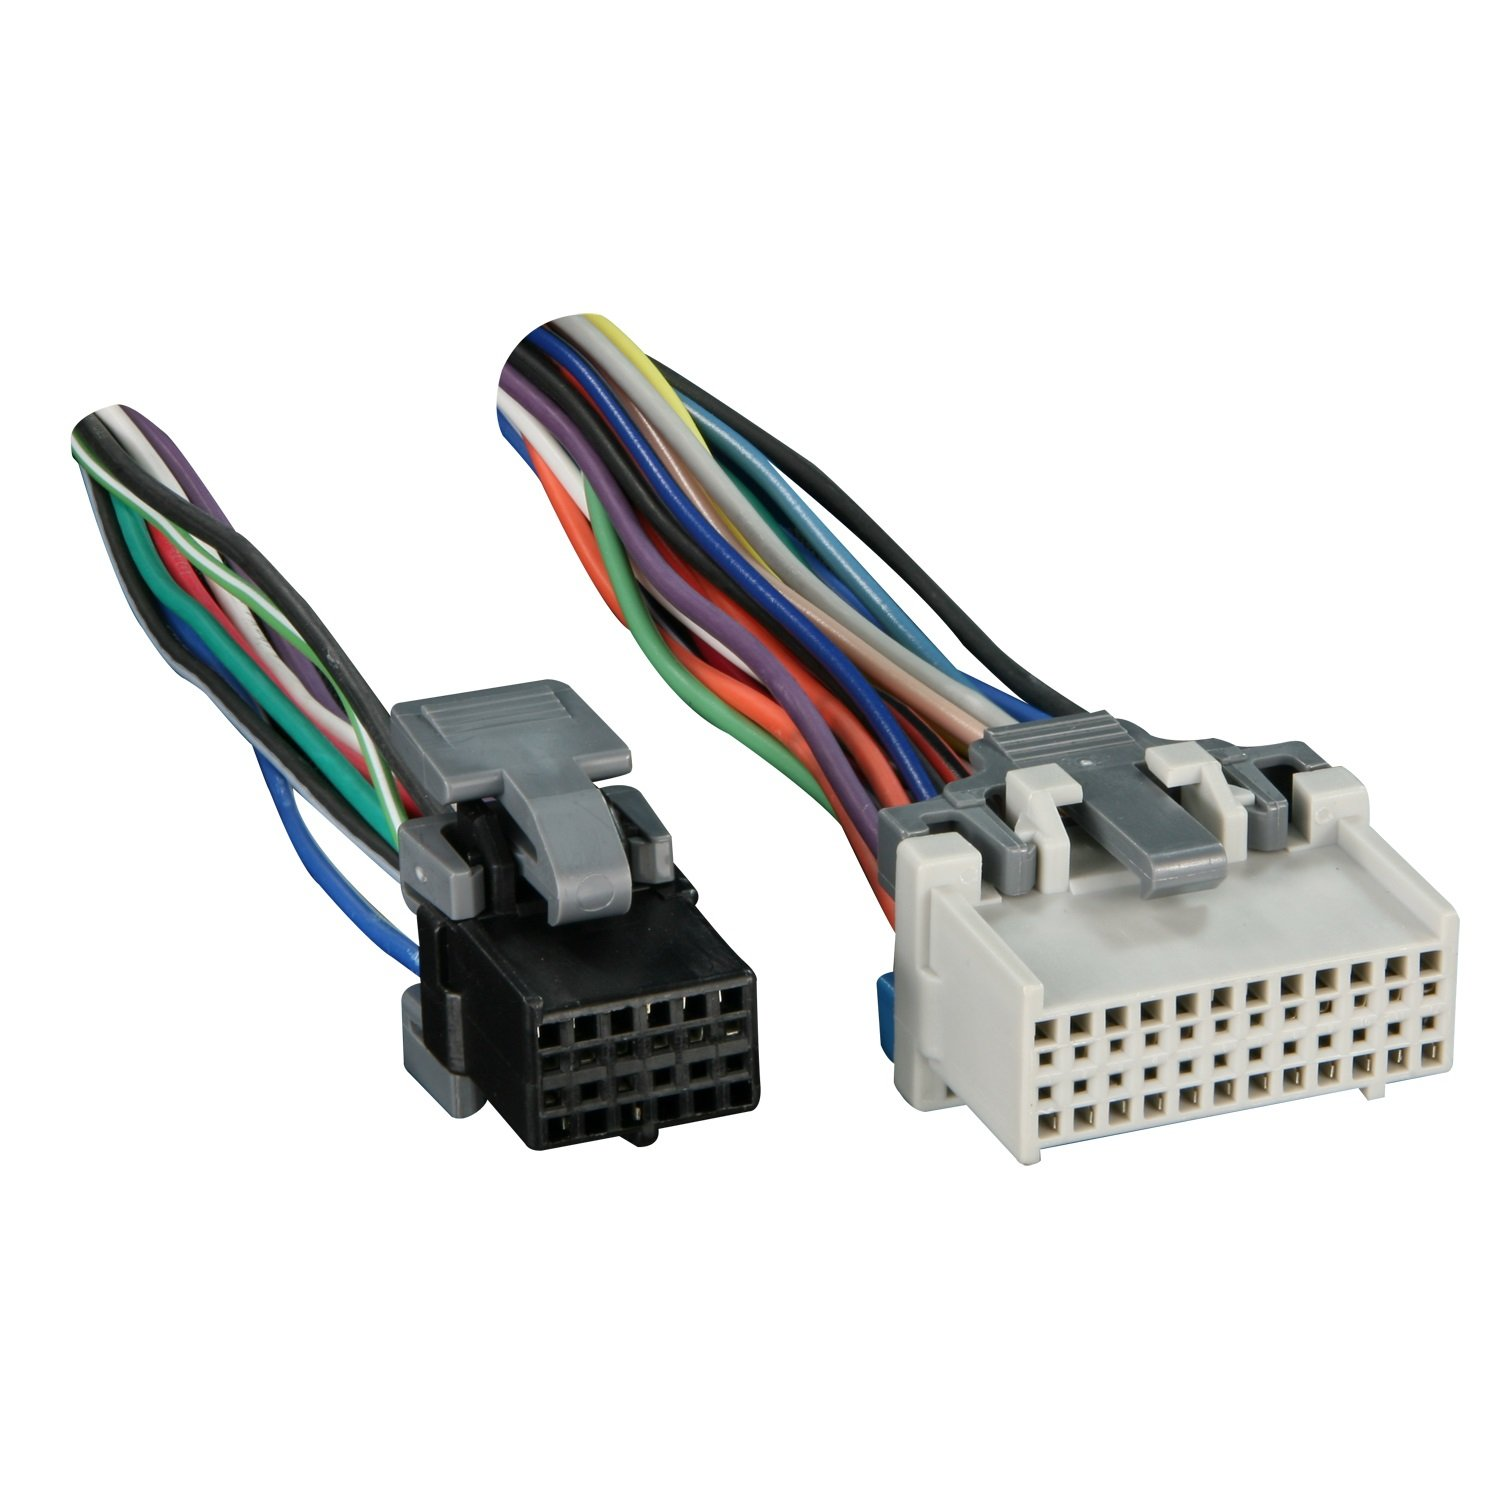 711log4bdML._SL1500_ amazon com metra turbowires 71 2003 1 wiring harness car electronics where to buy wiring harness connectors at gsmportal.co